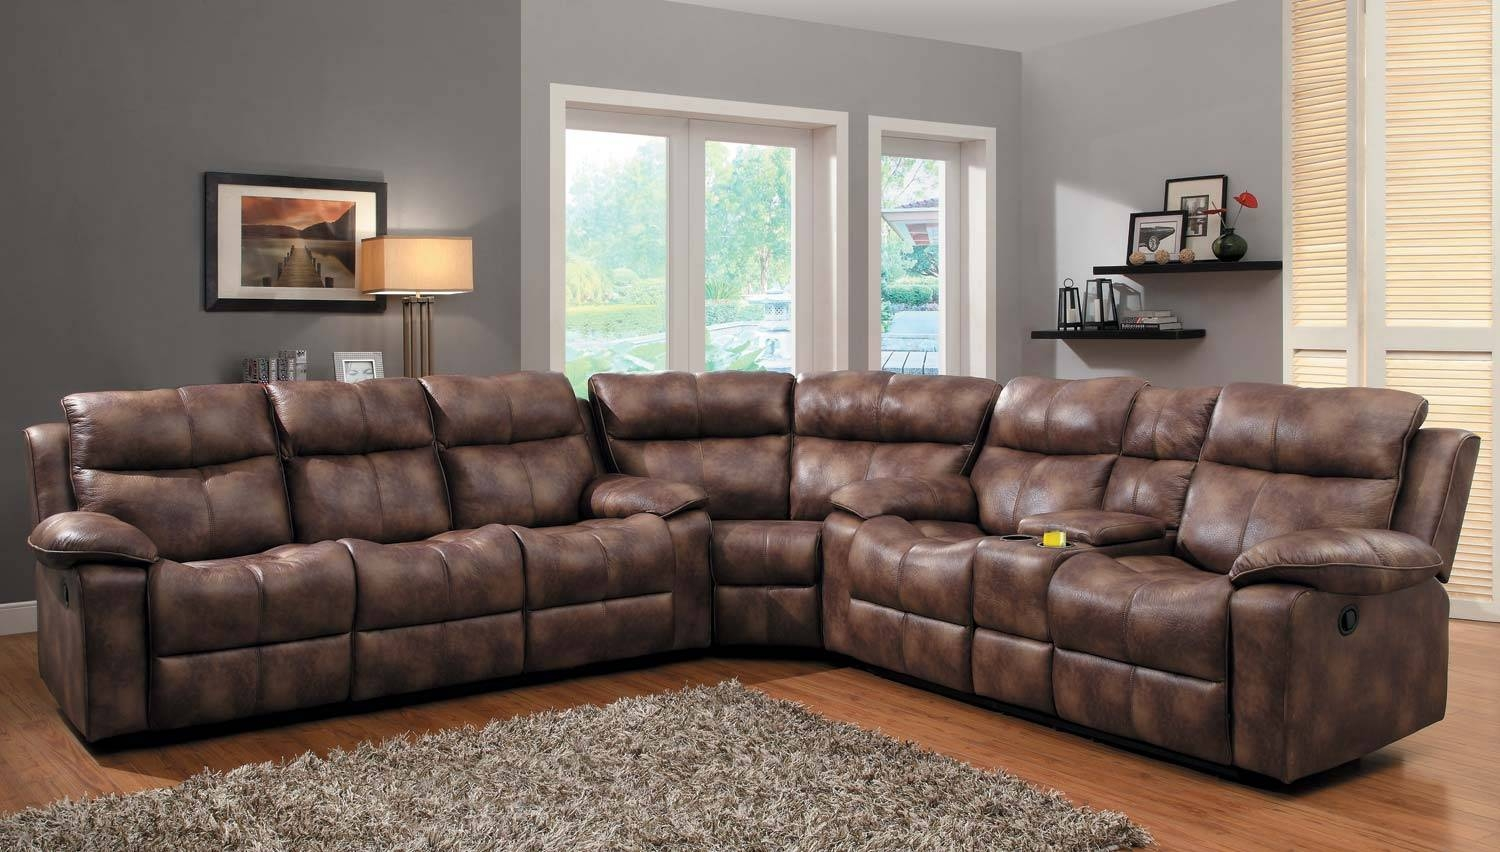 Enjoy In Recliner Sectional Sofa — Home Ideas Collection Within Sectional Sofa Recliners (View 3 of 30)